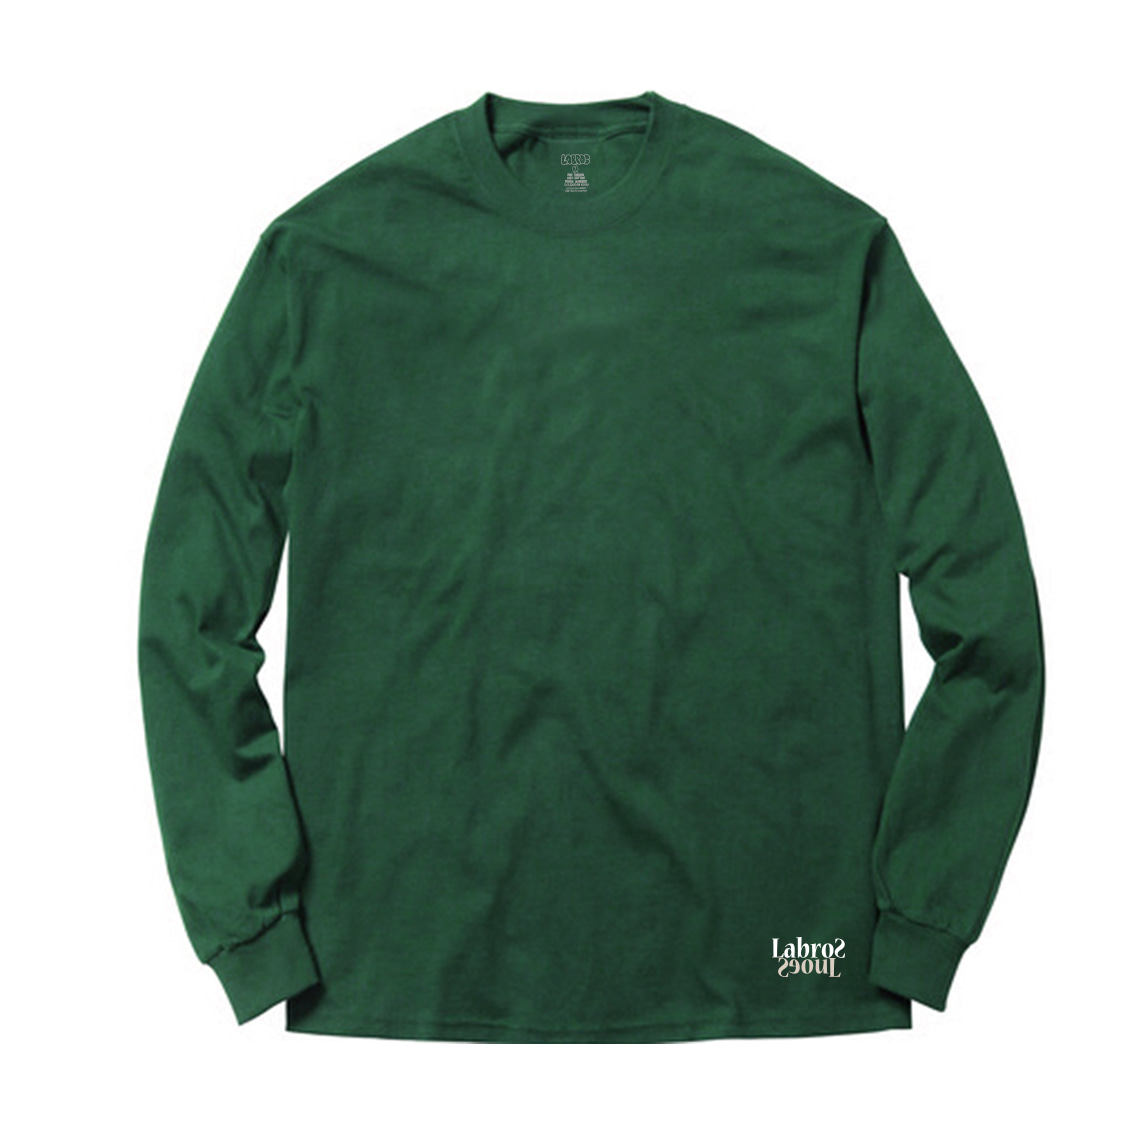 TGL Two-tone L/S Tee (Green)